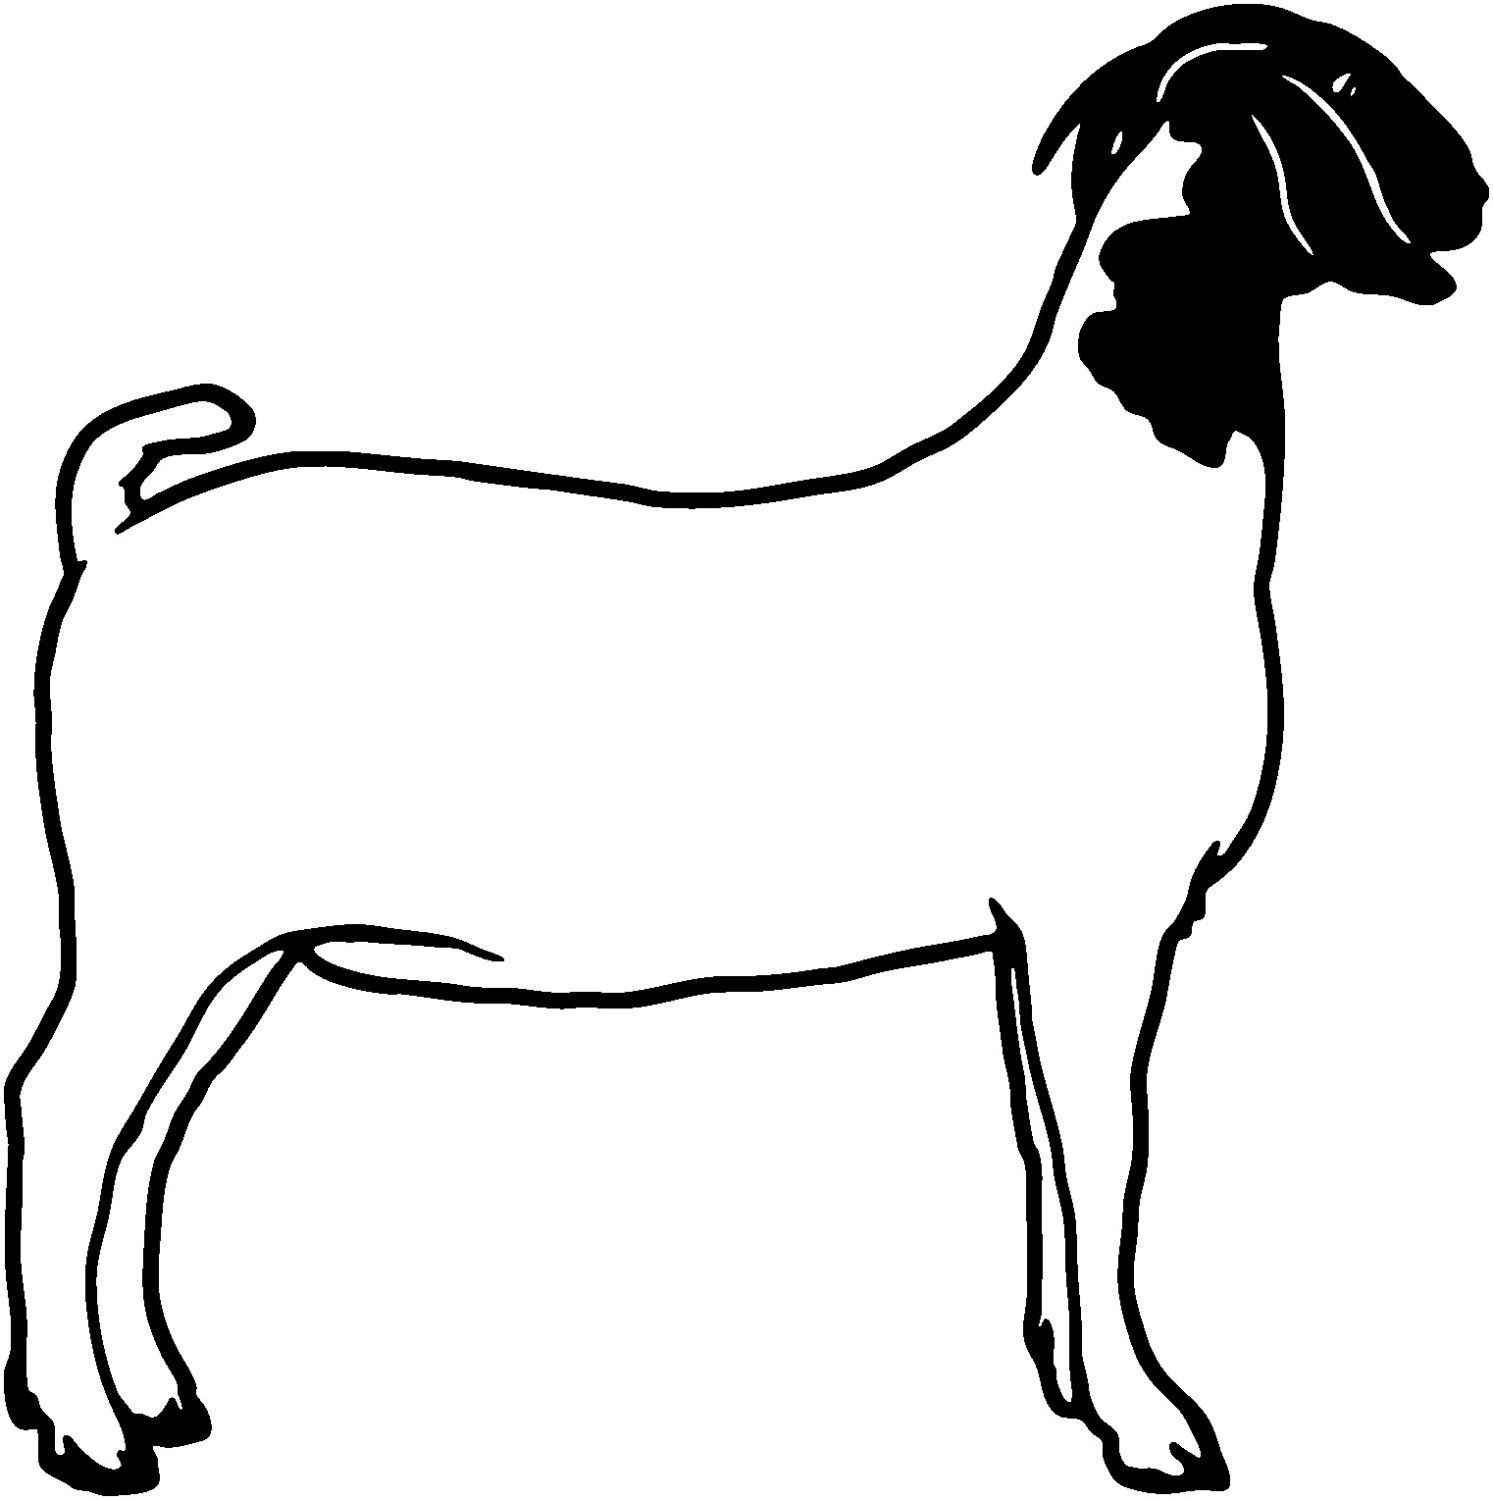 Goat Head Silhouette at GetDrawings.com | Free for personal use Goat ...